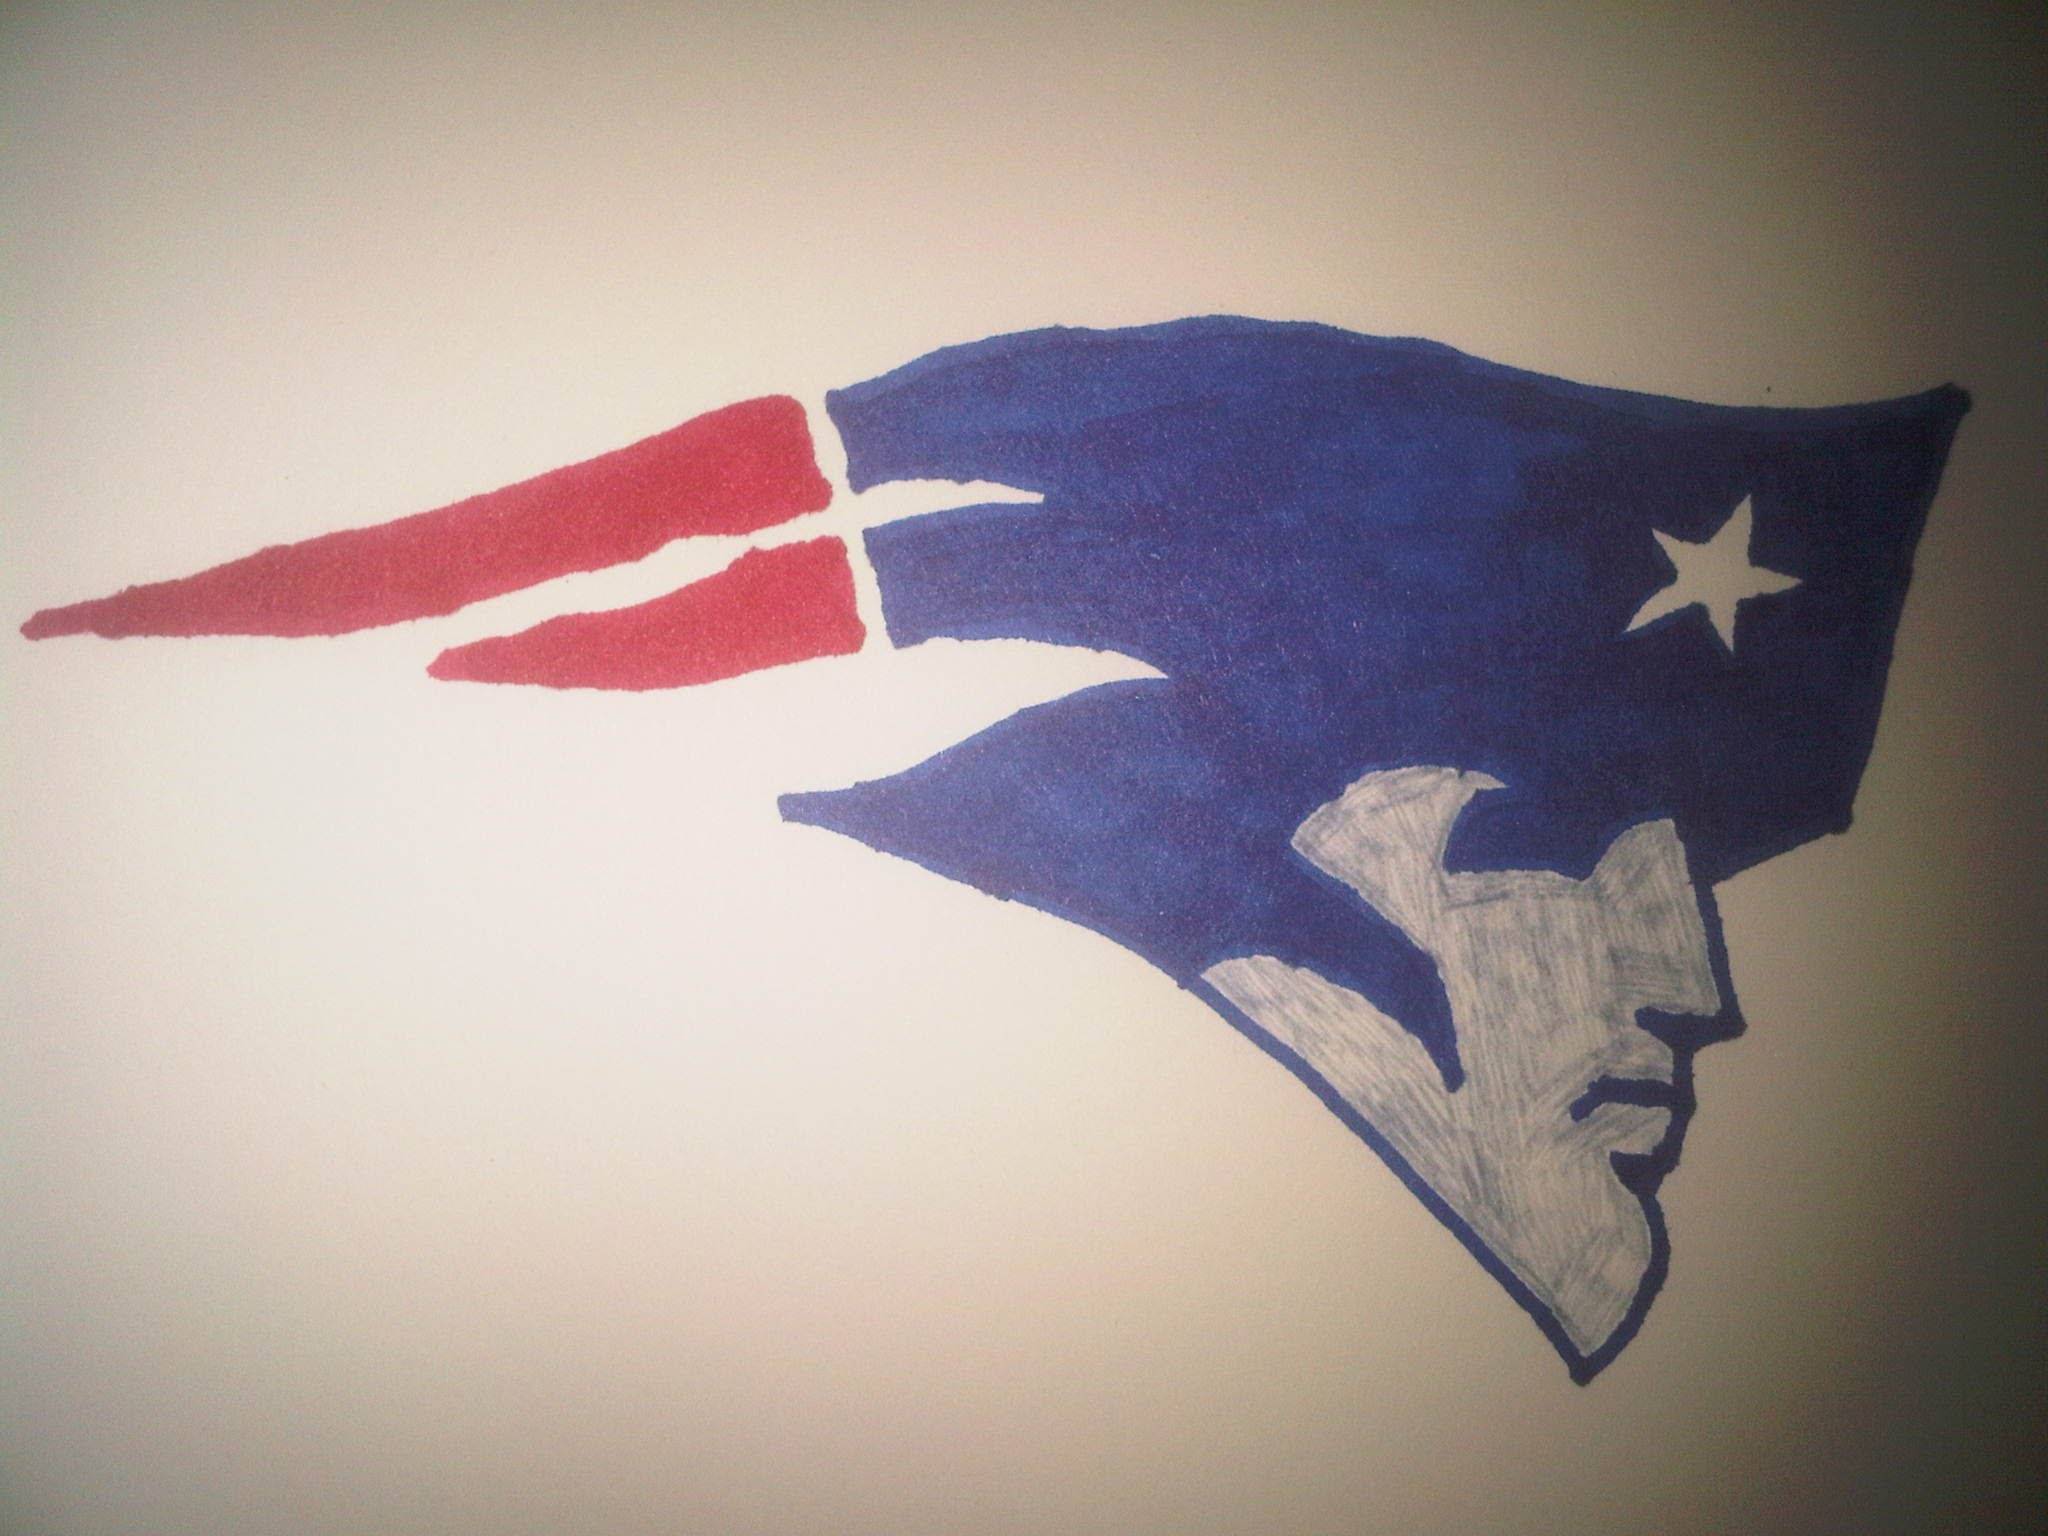 2048x1536 How To Draw The New England Patriots Logo